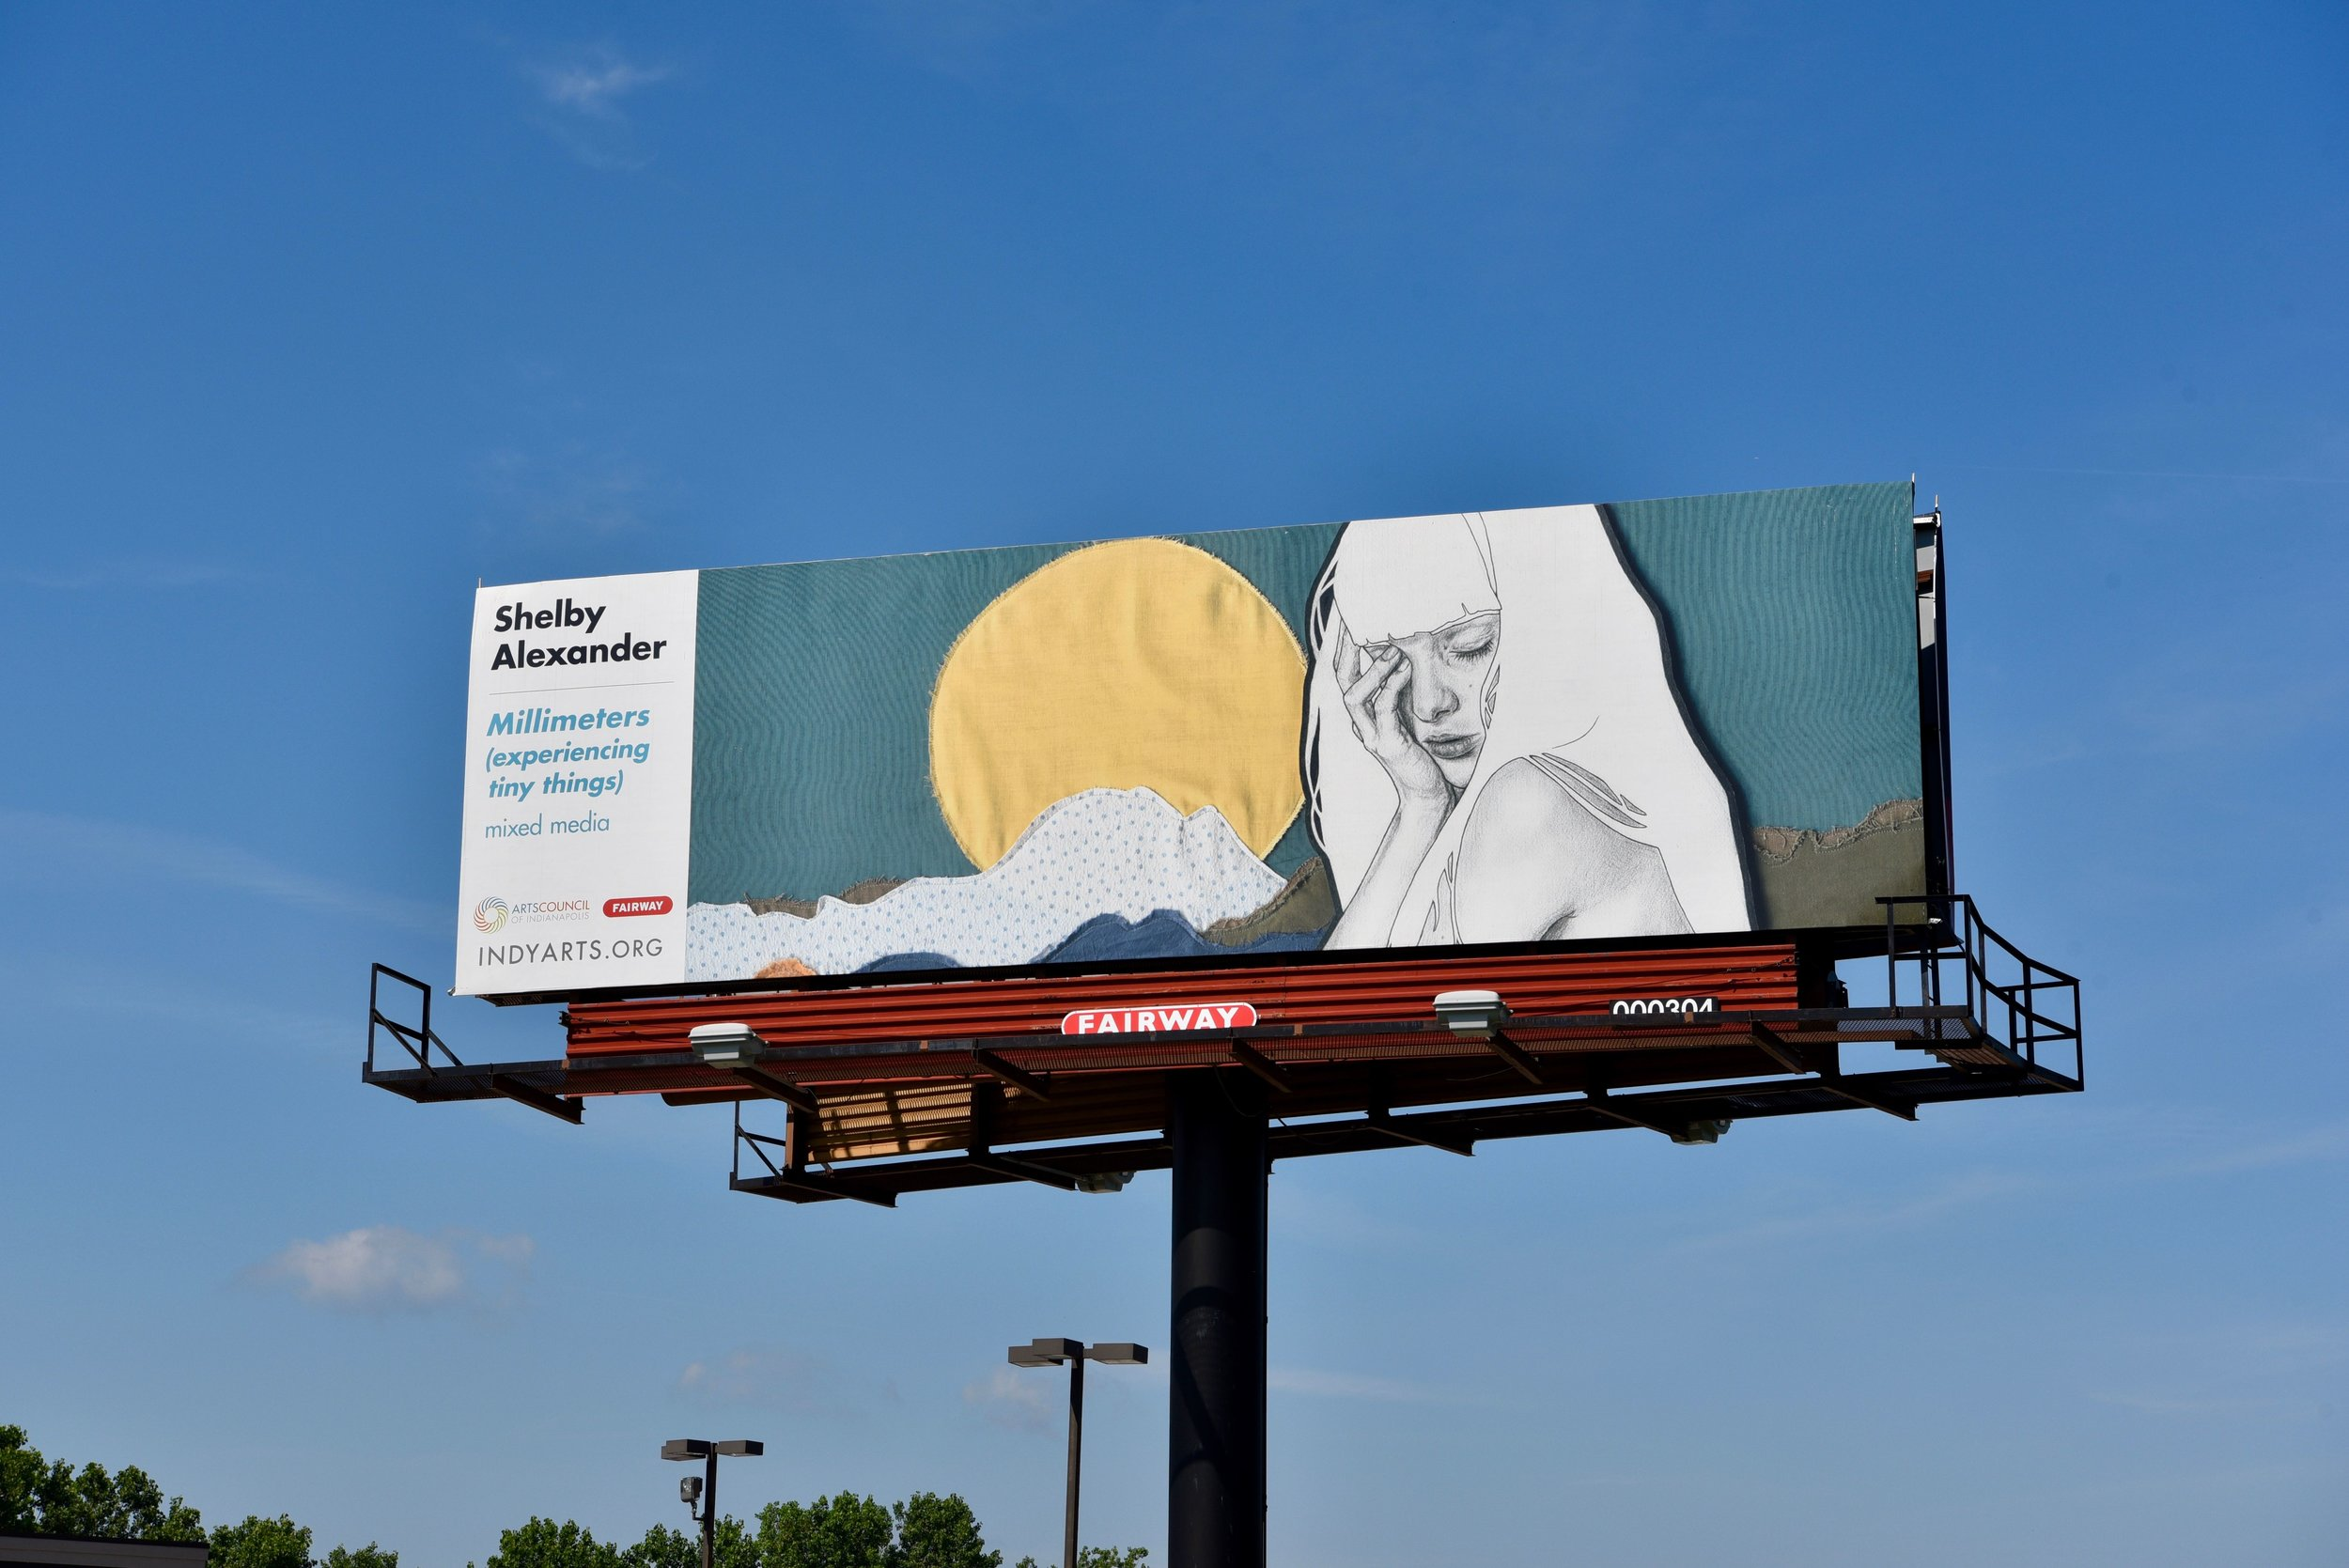 Millimeters (experiencing tiny things)  featured in the High Art Billboard Project, Indianapolis, IN | Aug. 2018 - Aug. 2019